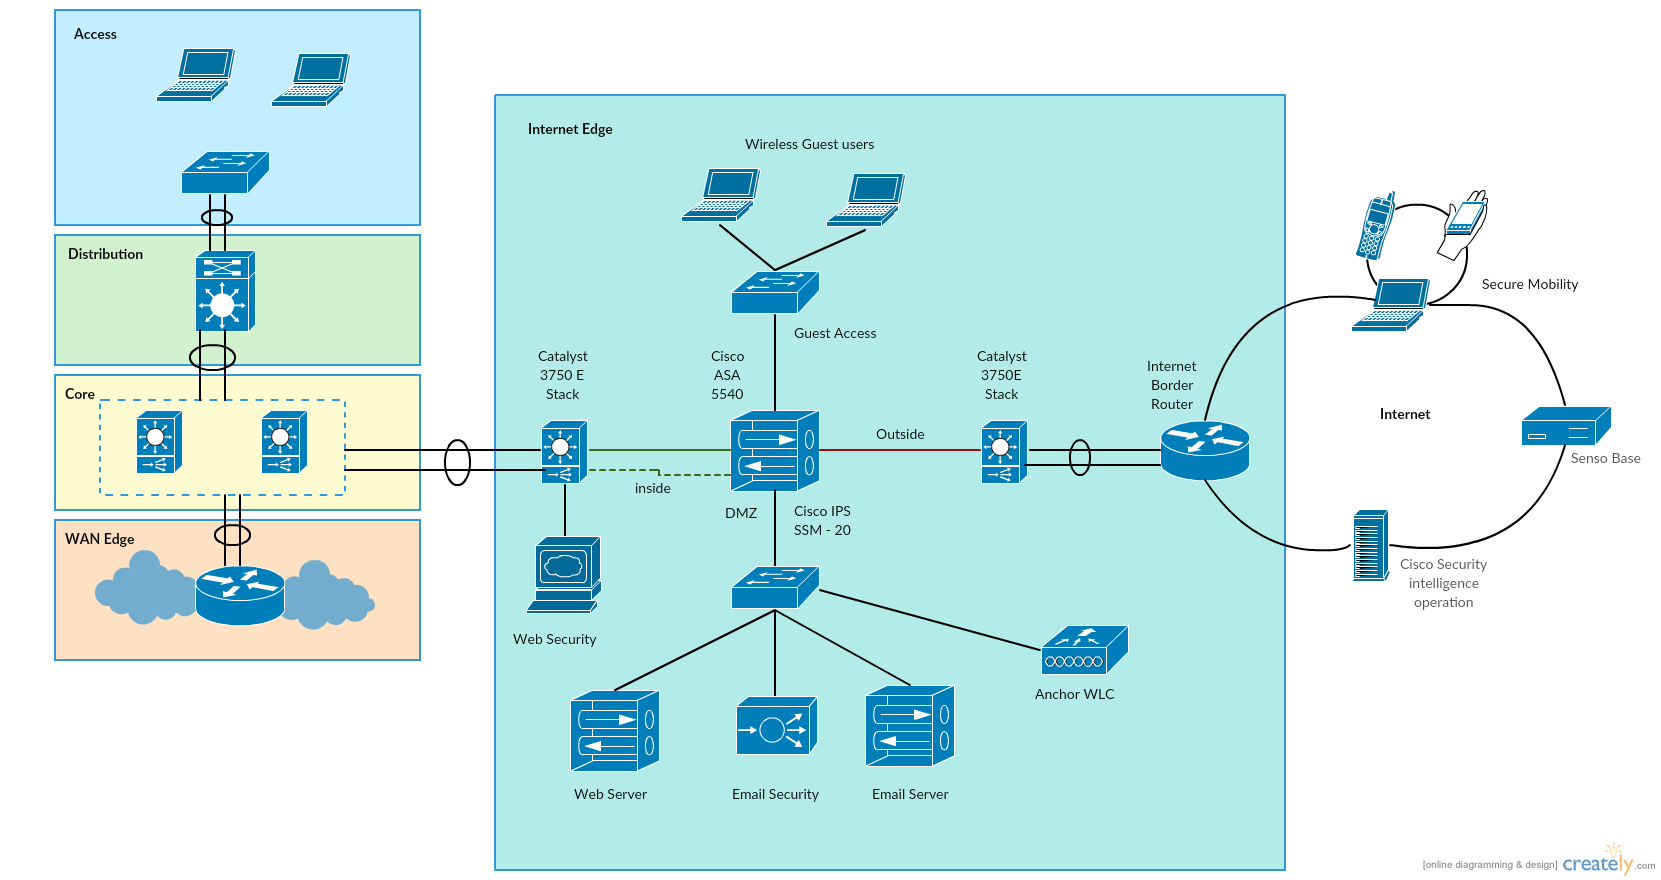 cisco network diagram icons honda cb400 vtec wiring templates to get you started right away creately